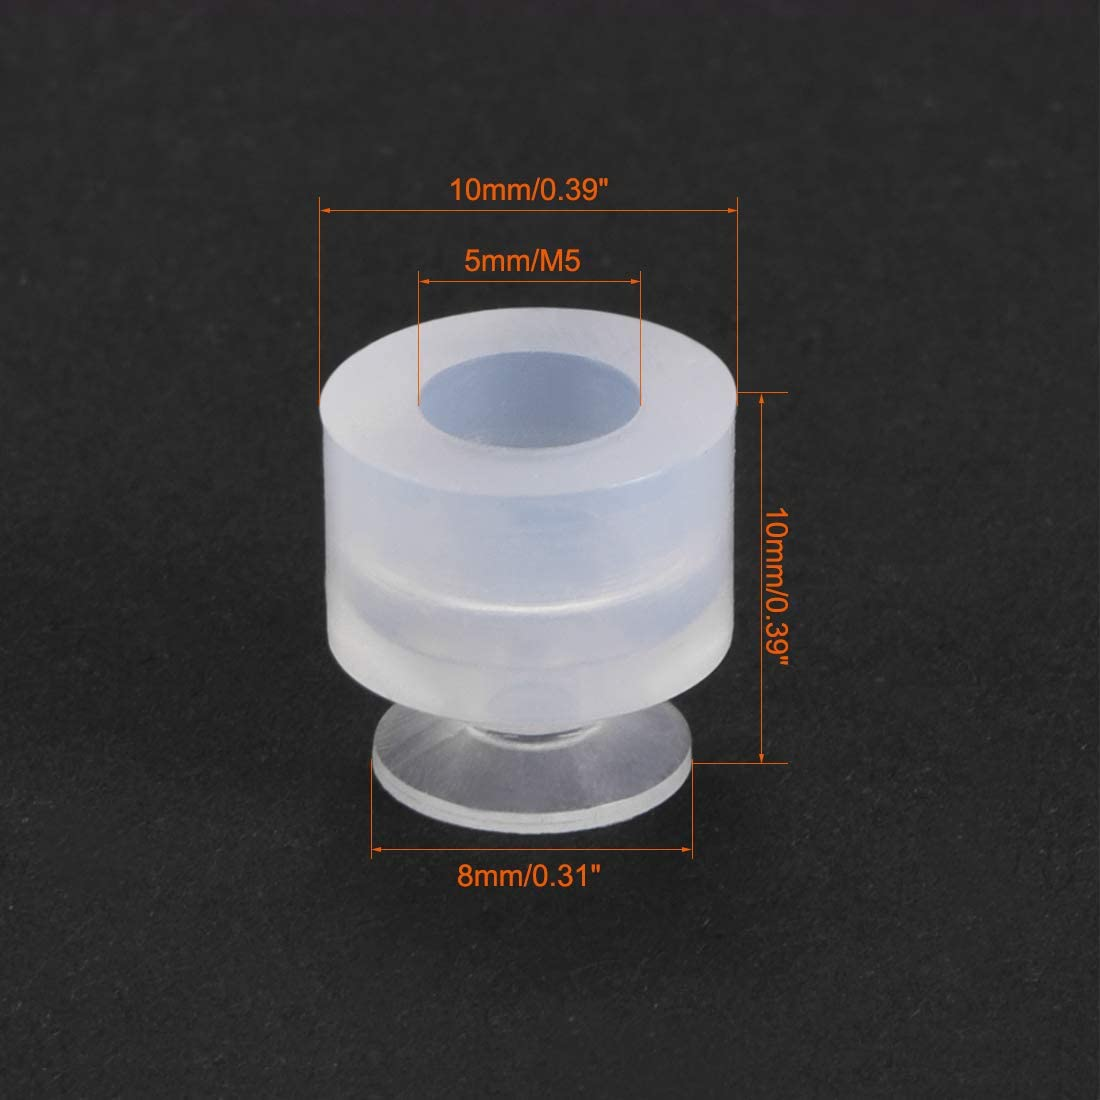 8mm Diameter x M5 Joint Silicone Vacuum Pneumatic Suction Cup uxcell Suction Cups